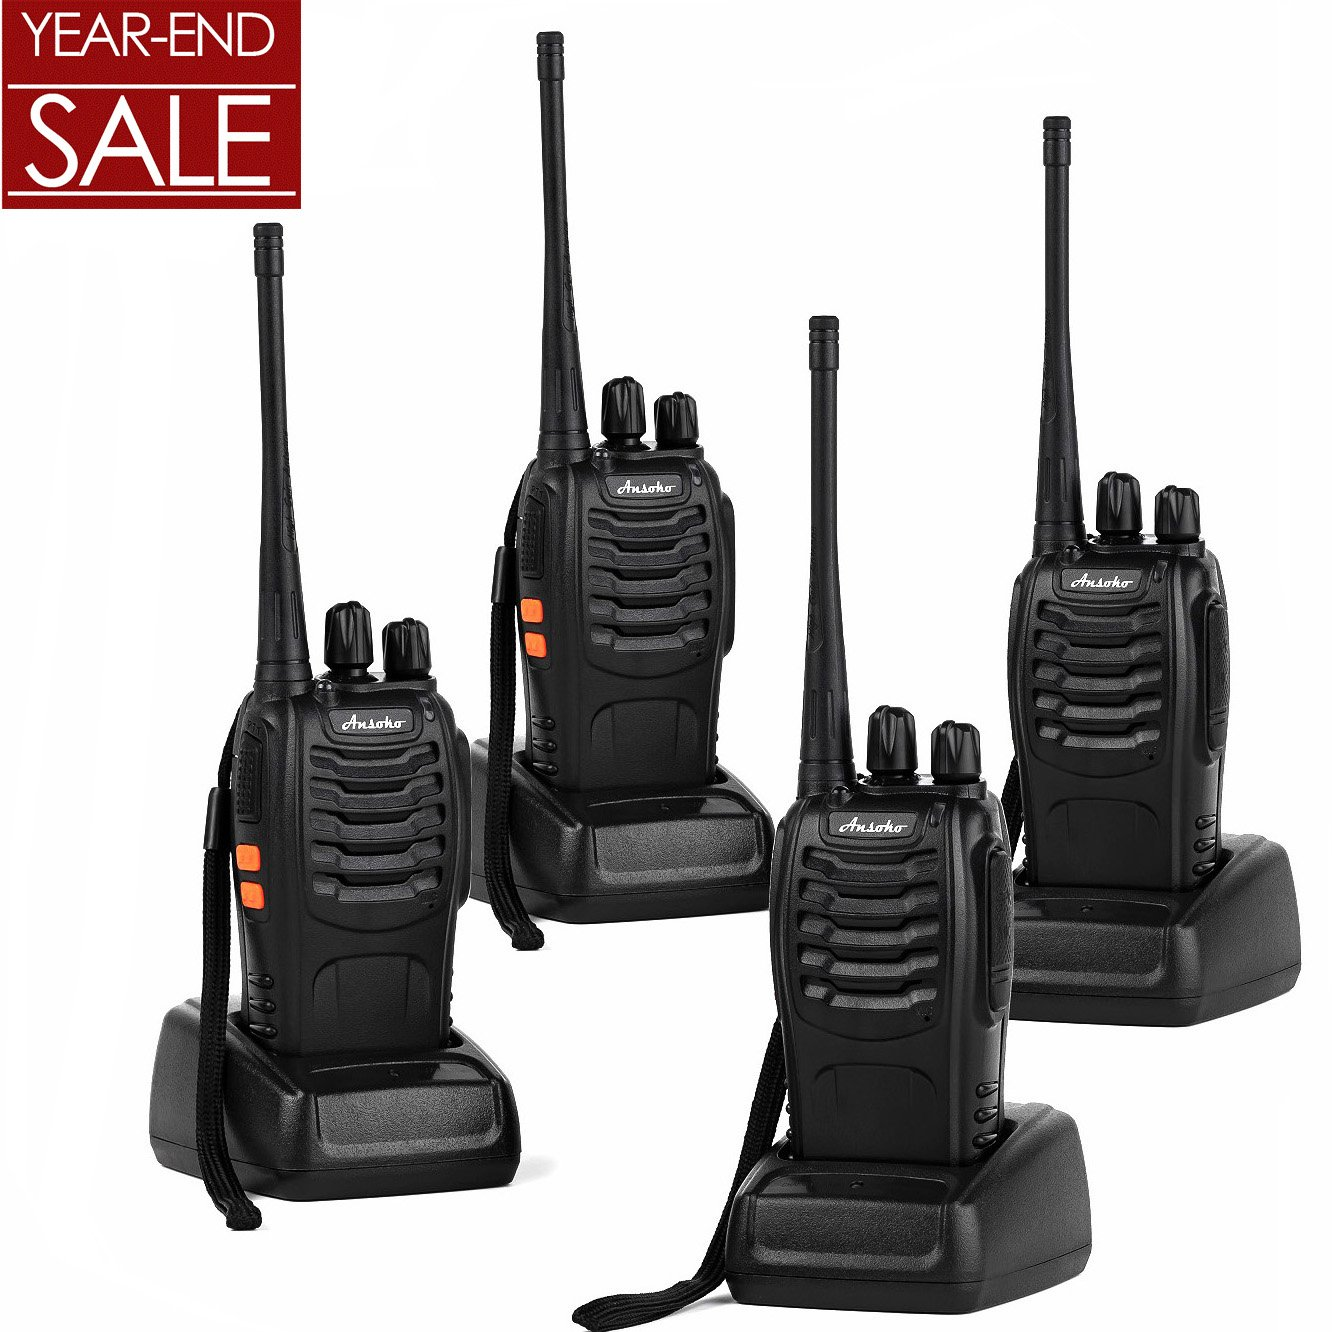 Ansoko Handheld Wakie Talkies Long Range Two Way Radios(Pack of 2) Shenzhen Qicheng Technology Co. Ltd. ASK-888S